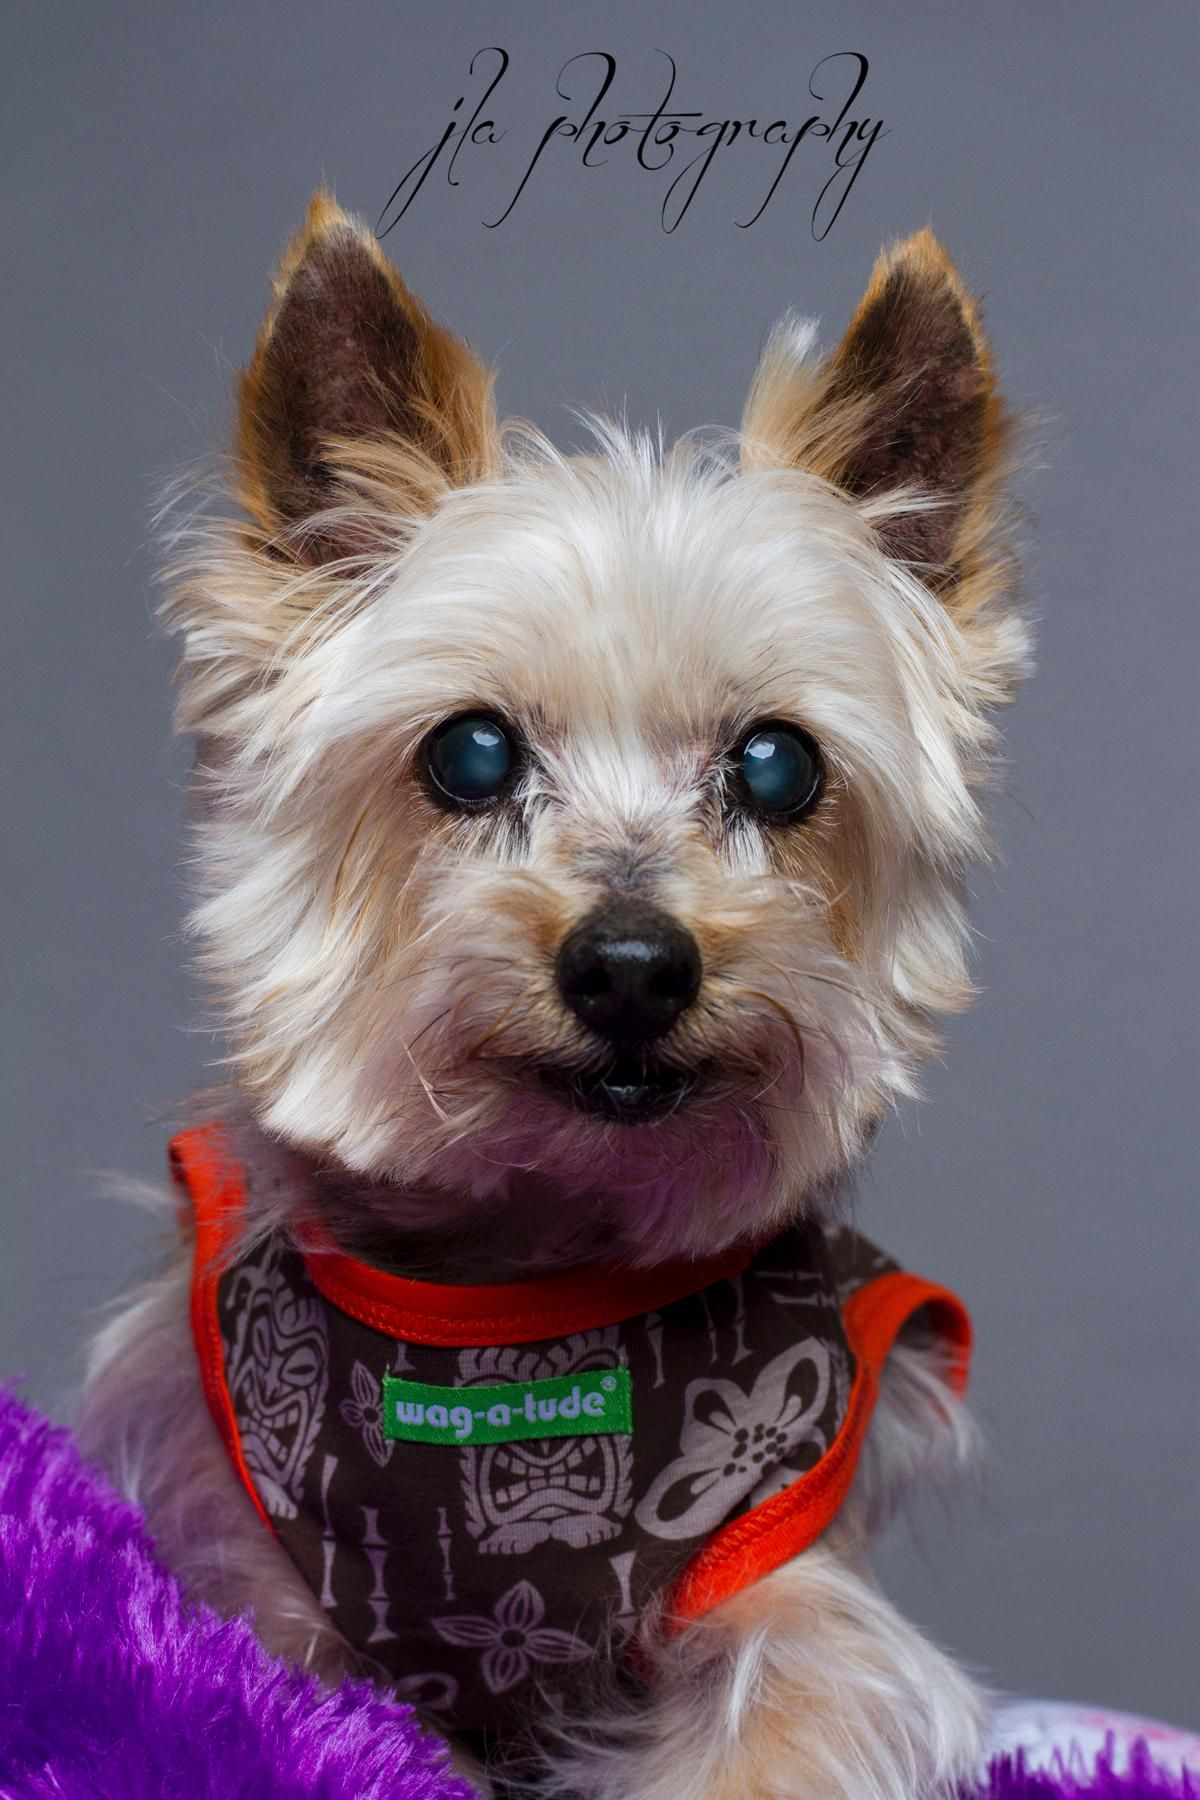 Spanky Is An Adoptable Yorkshire Terrier Yorkie Searching For A Forever Family Near Baton Rouge La Use Petfinder To Find Adoptable P Mascotas Perros Animales